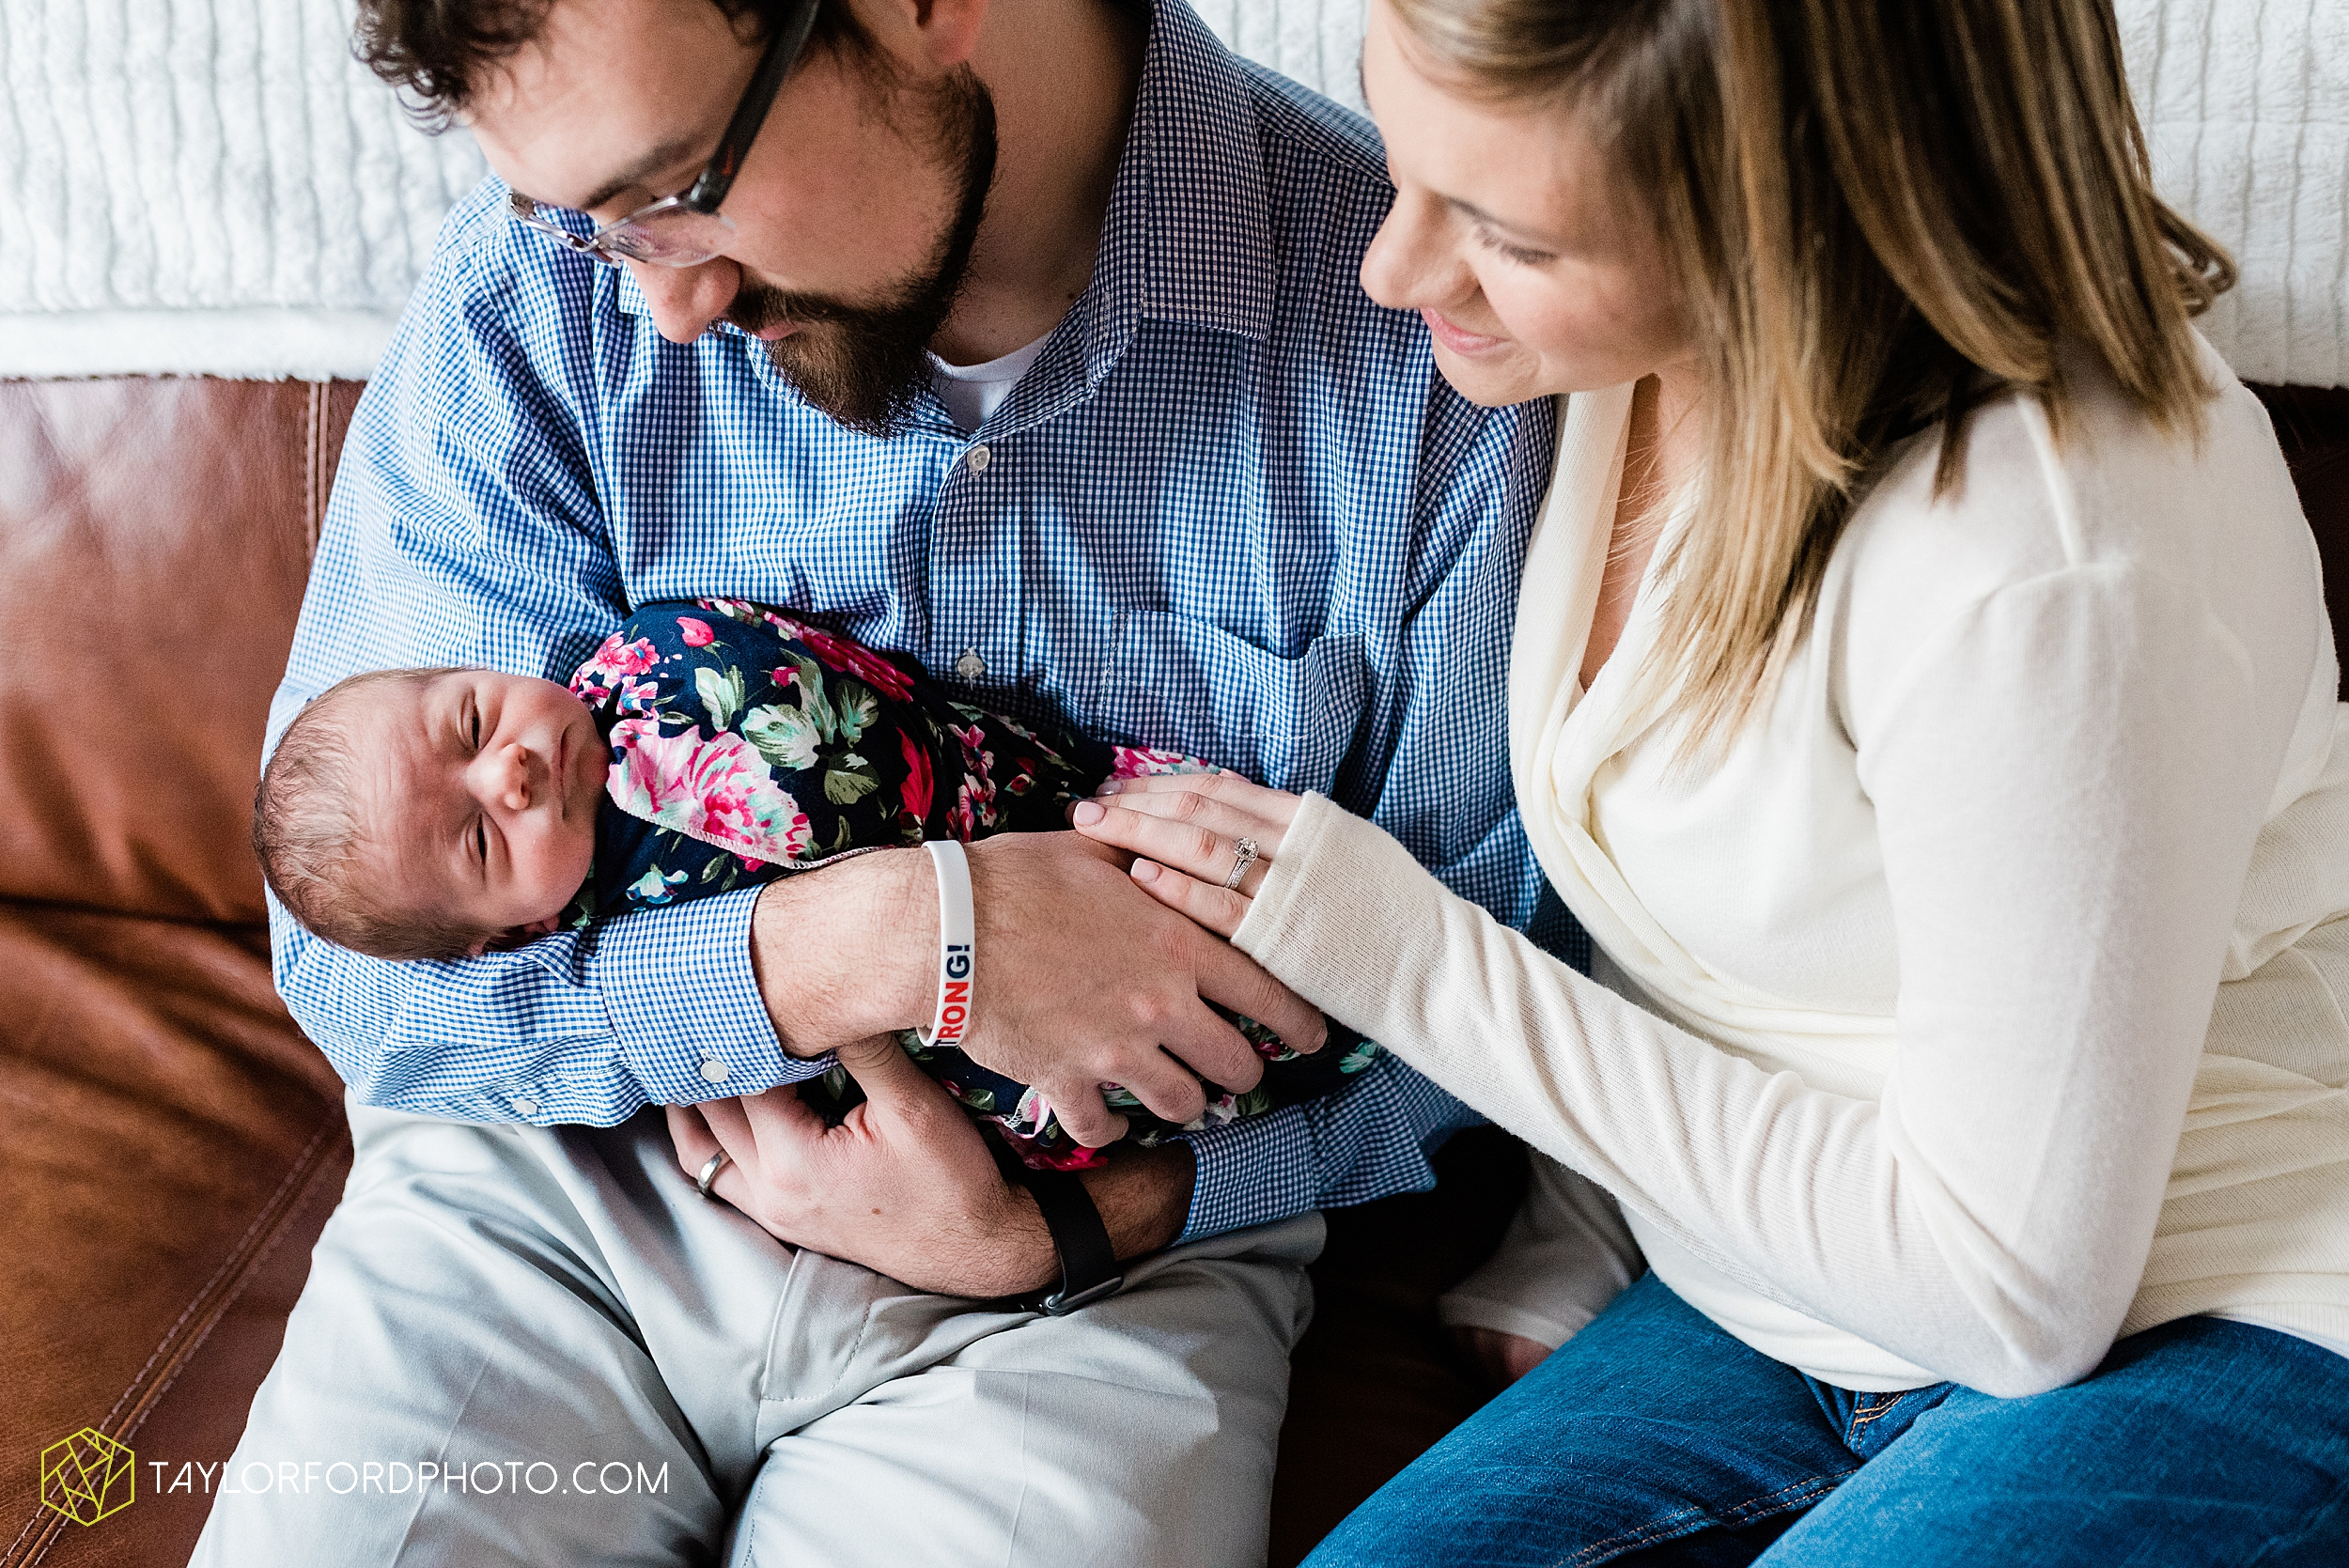 ashley-aaron-noraa-lifestyle-at-home-family-newborn-blacklick-columbus-ohio-photography-taylor-ford-hirschy-photographer_2345.jpg